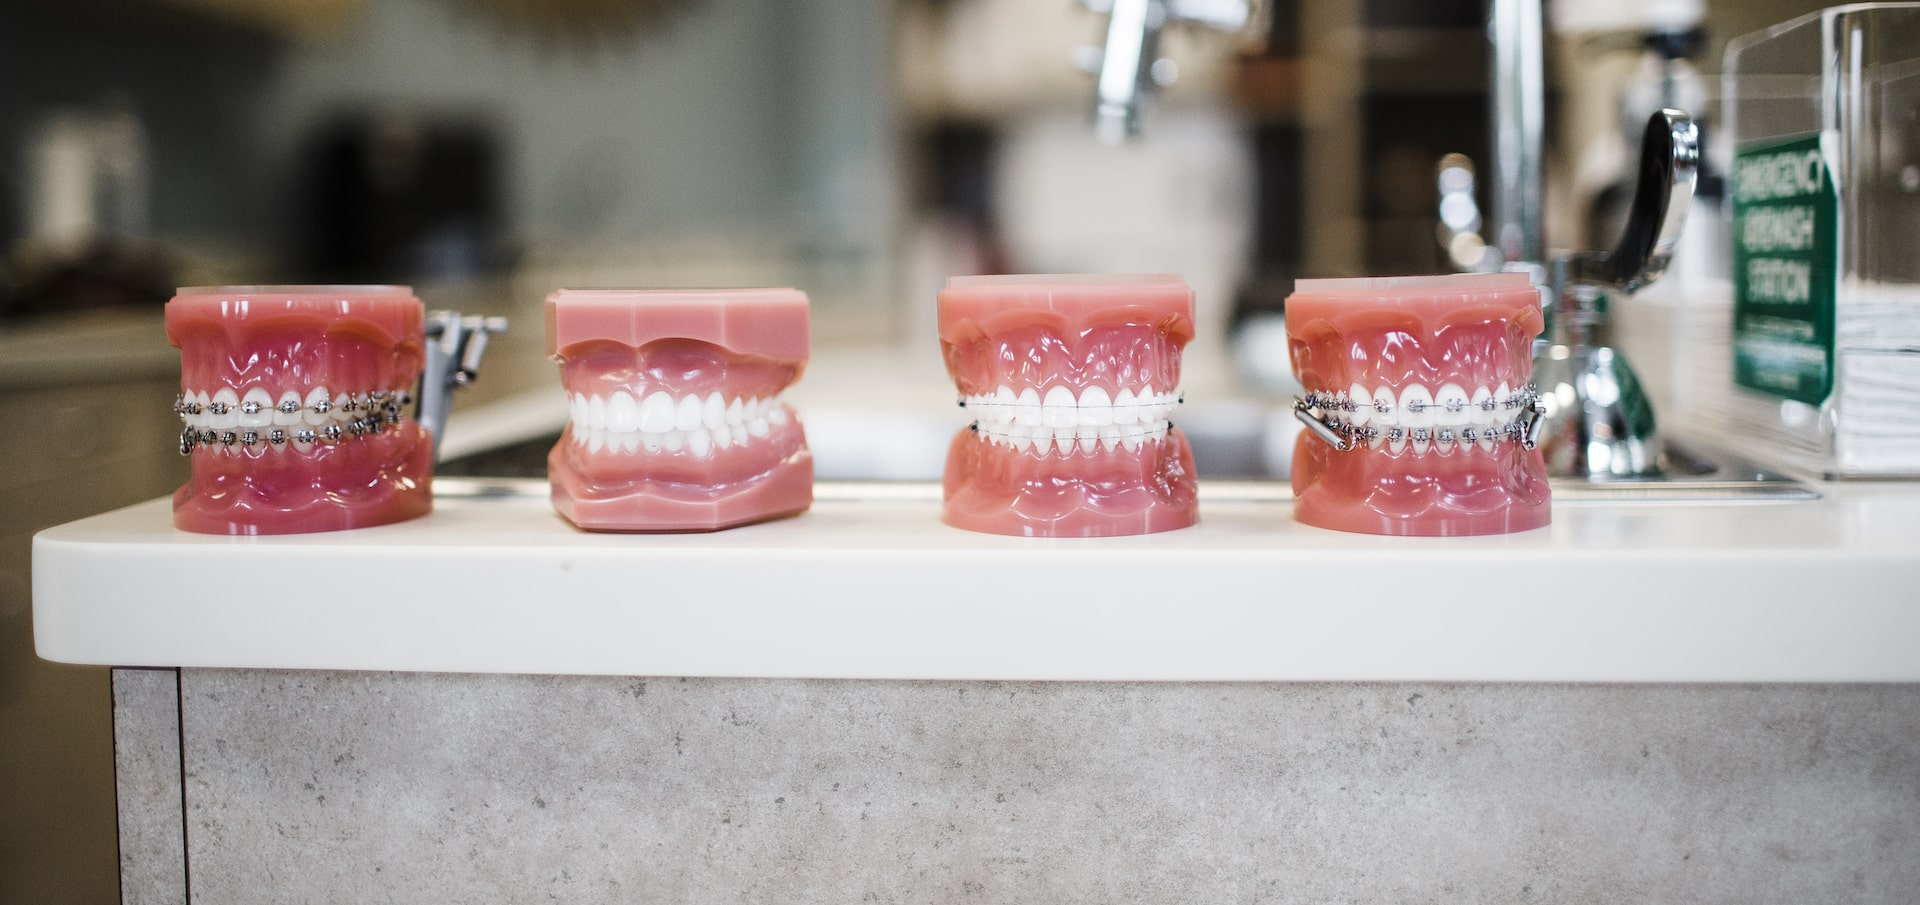 Four tooth models in a row with various styles of braces on them